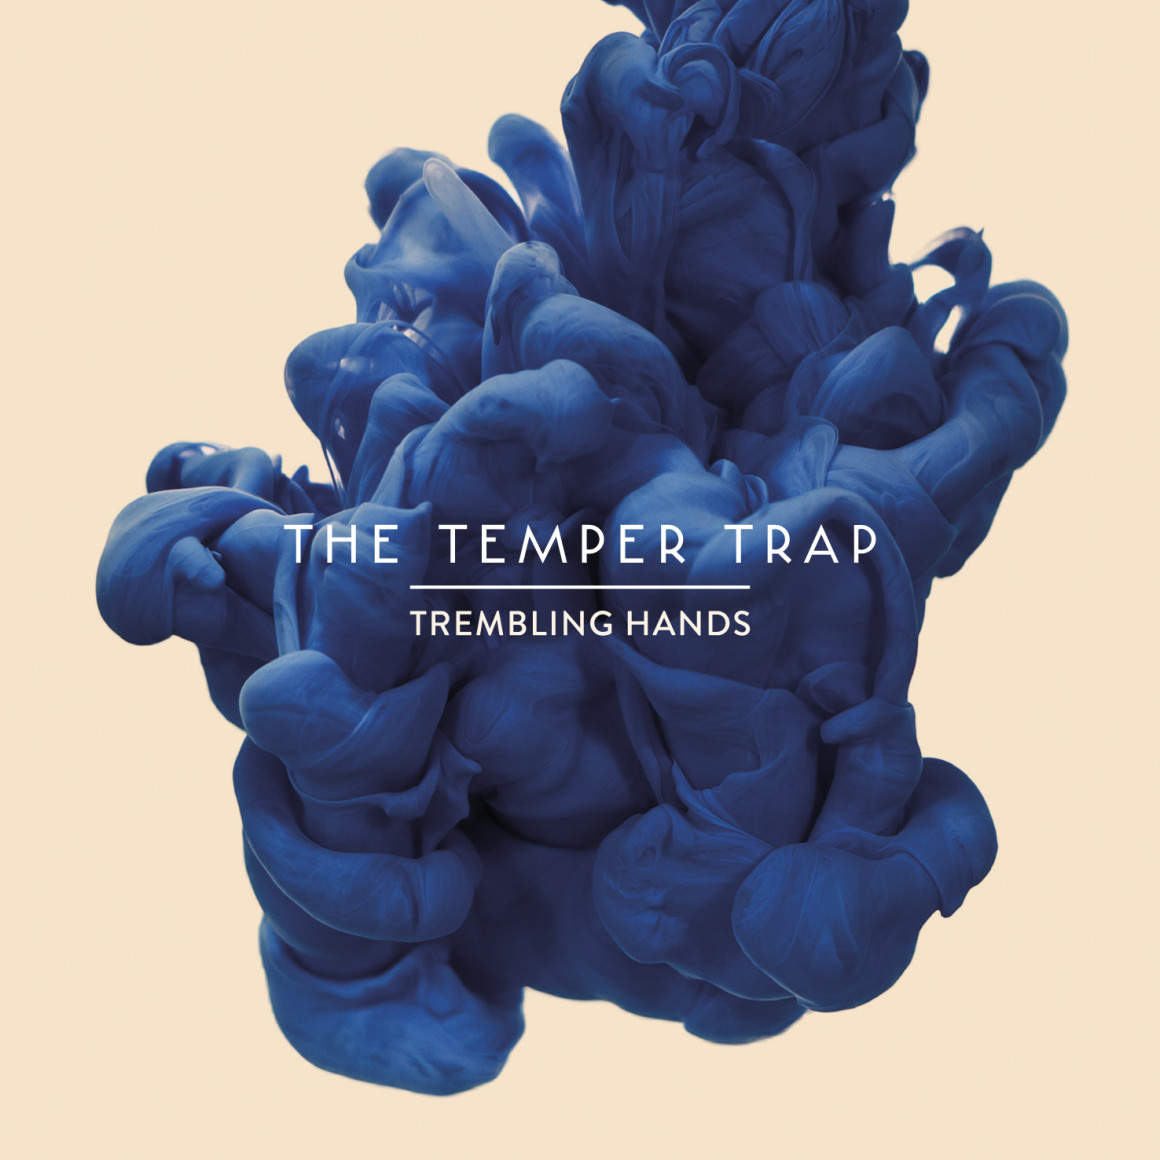 The Temper Trap Alberto Seveso